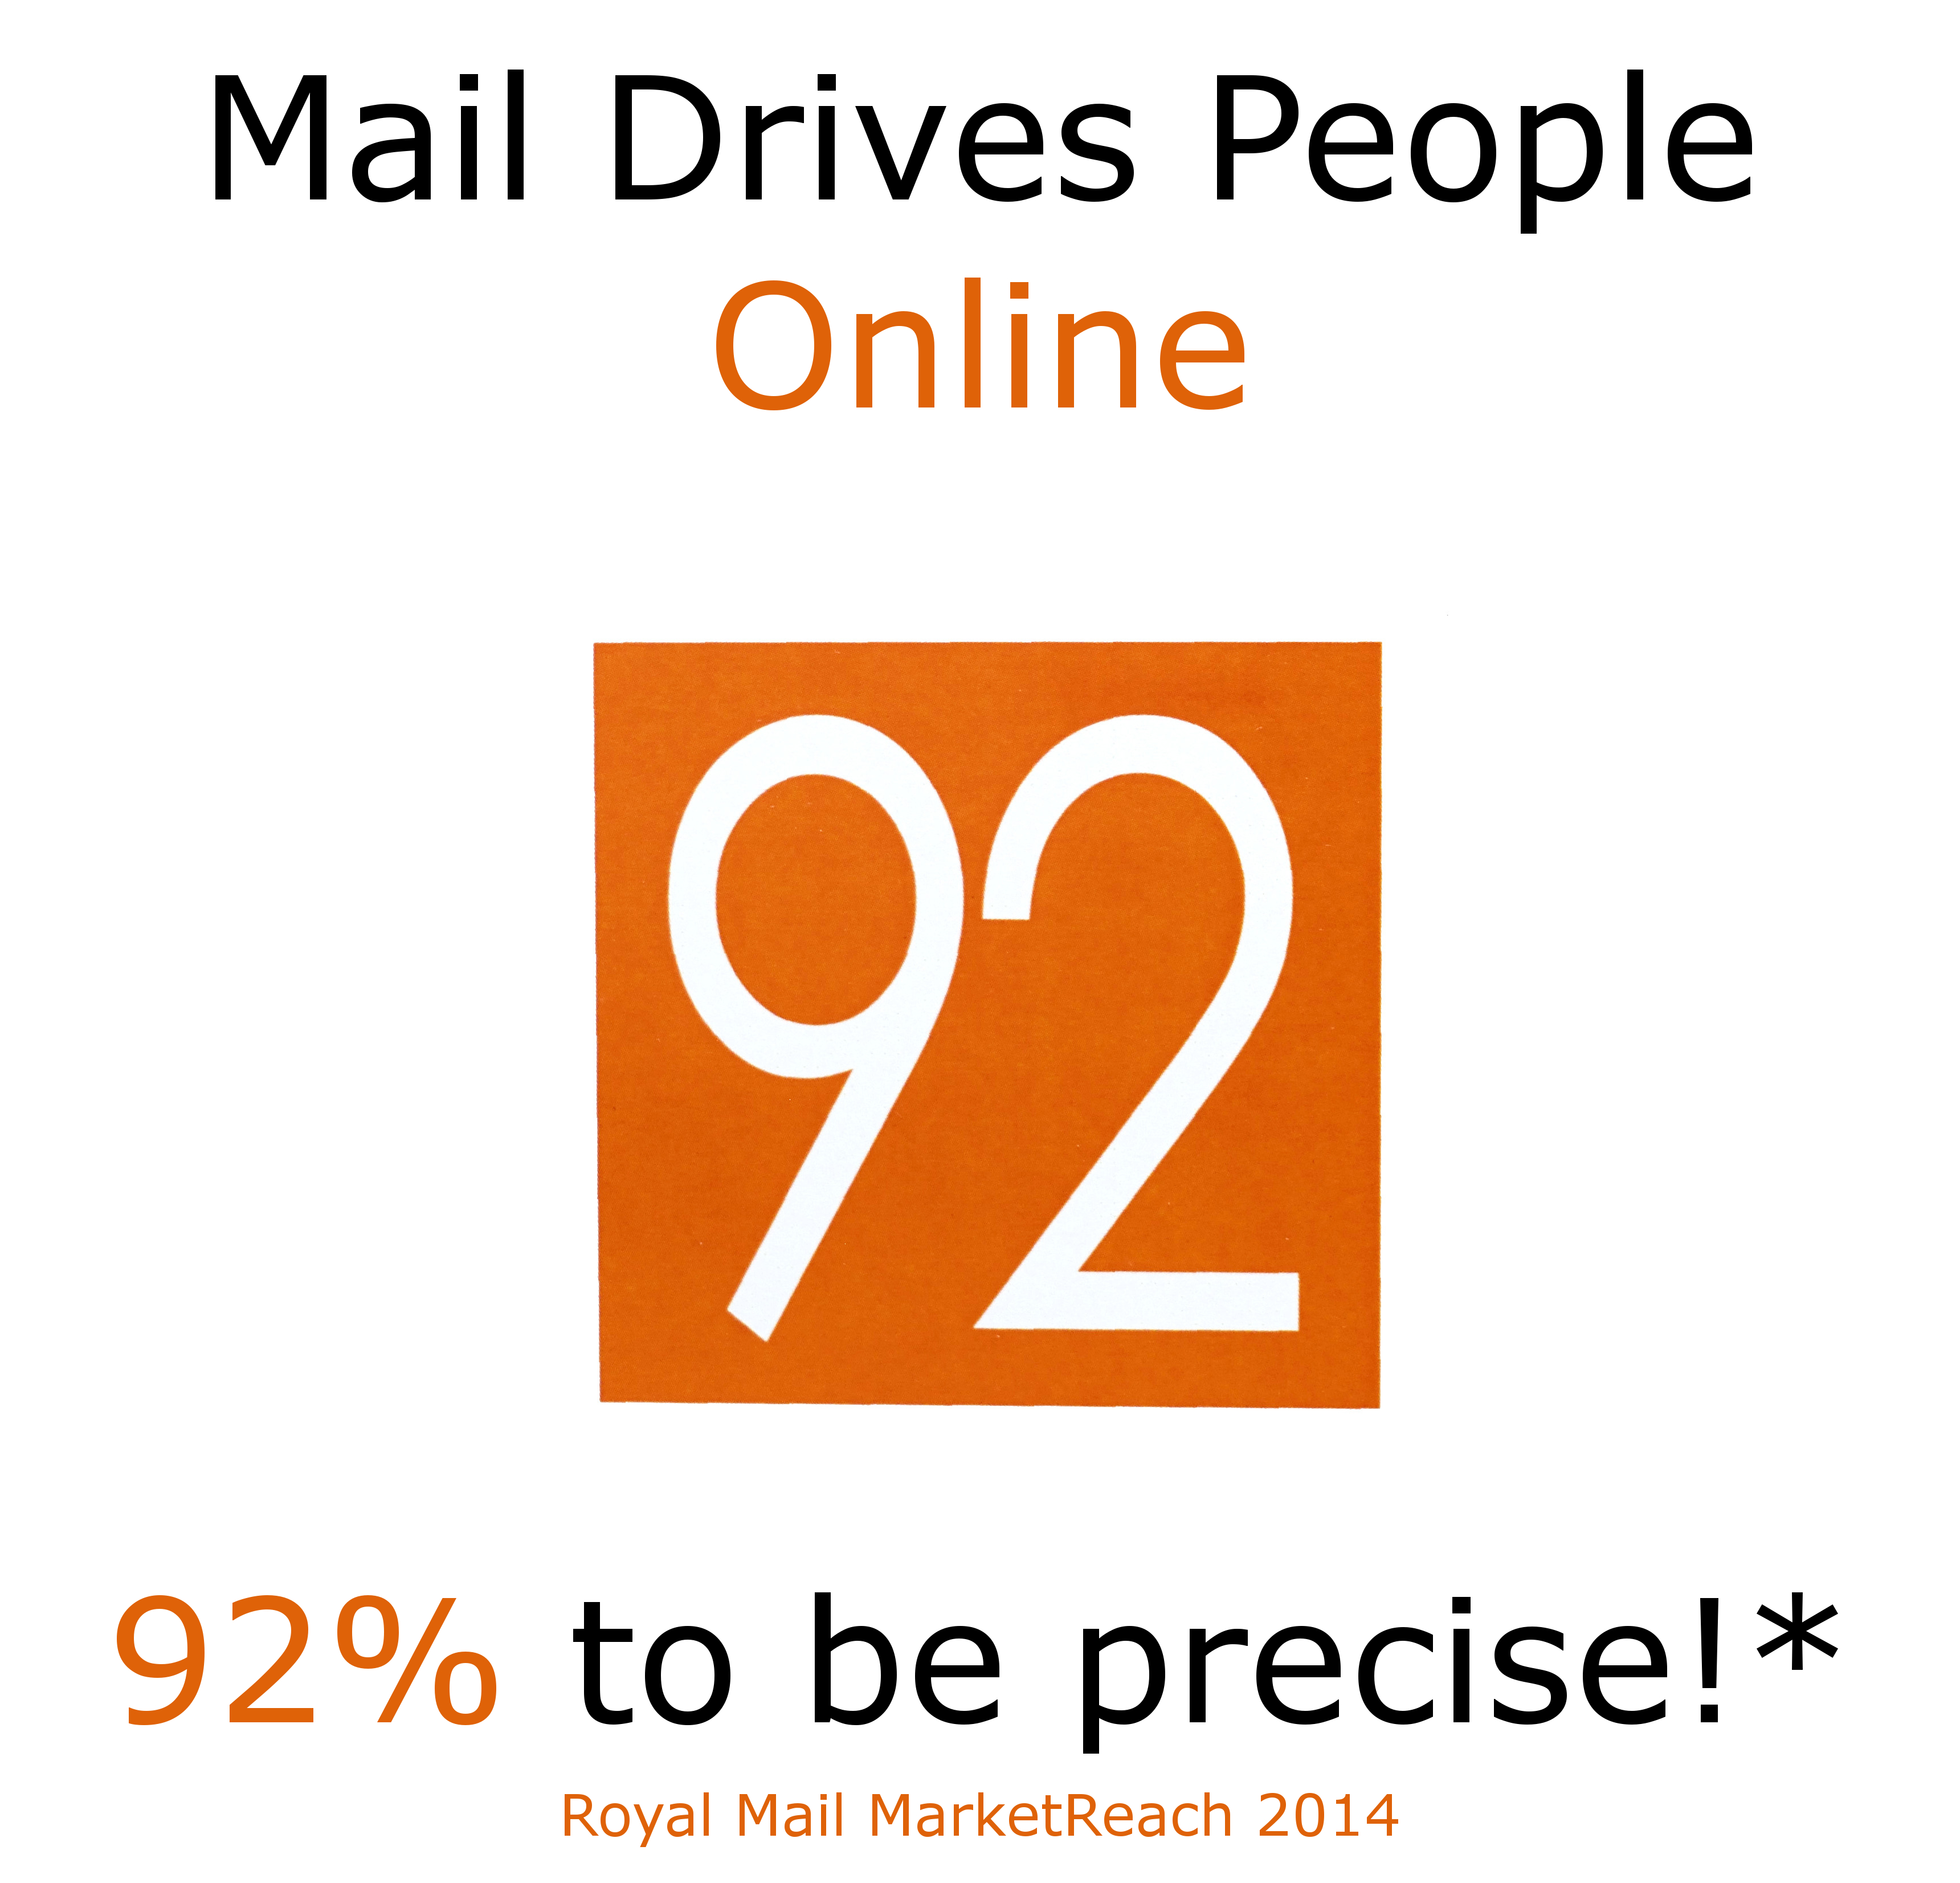 92% of people were driven online as a result of receiving mail